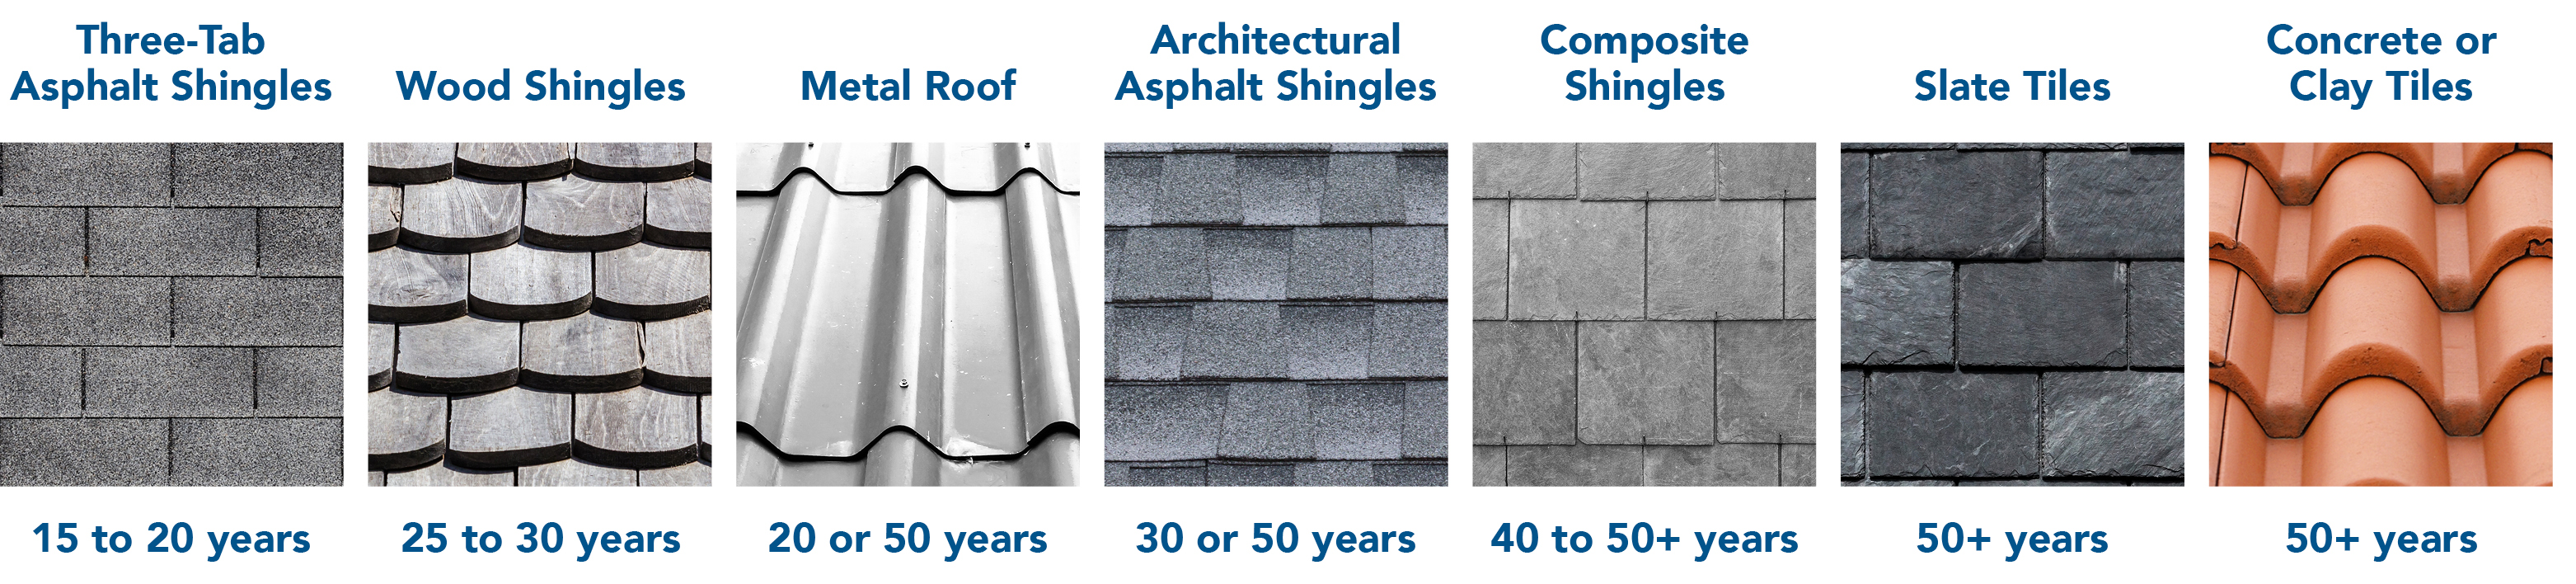 how long roofs last based on type of roof.